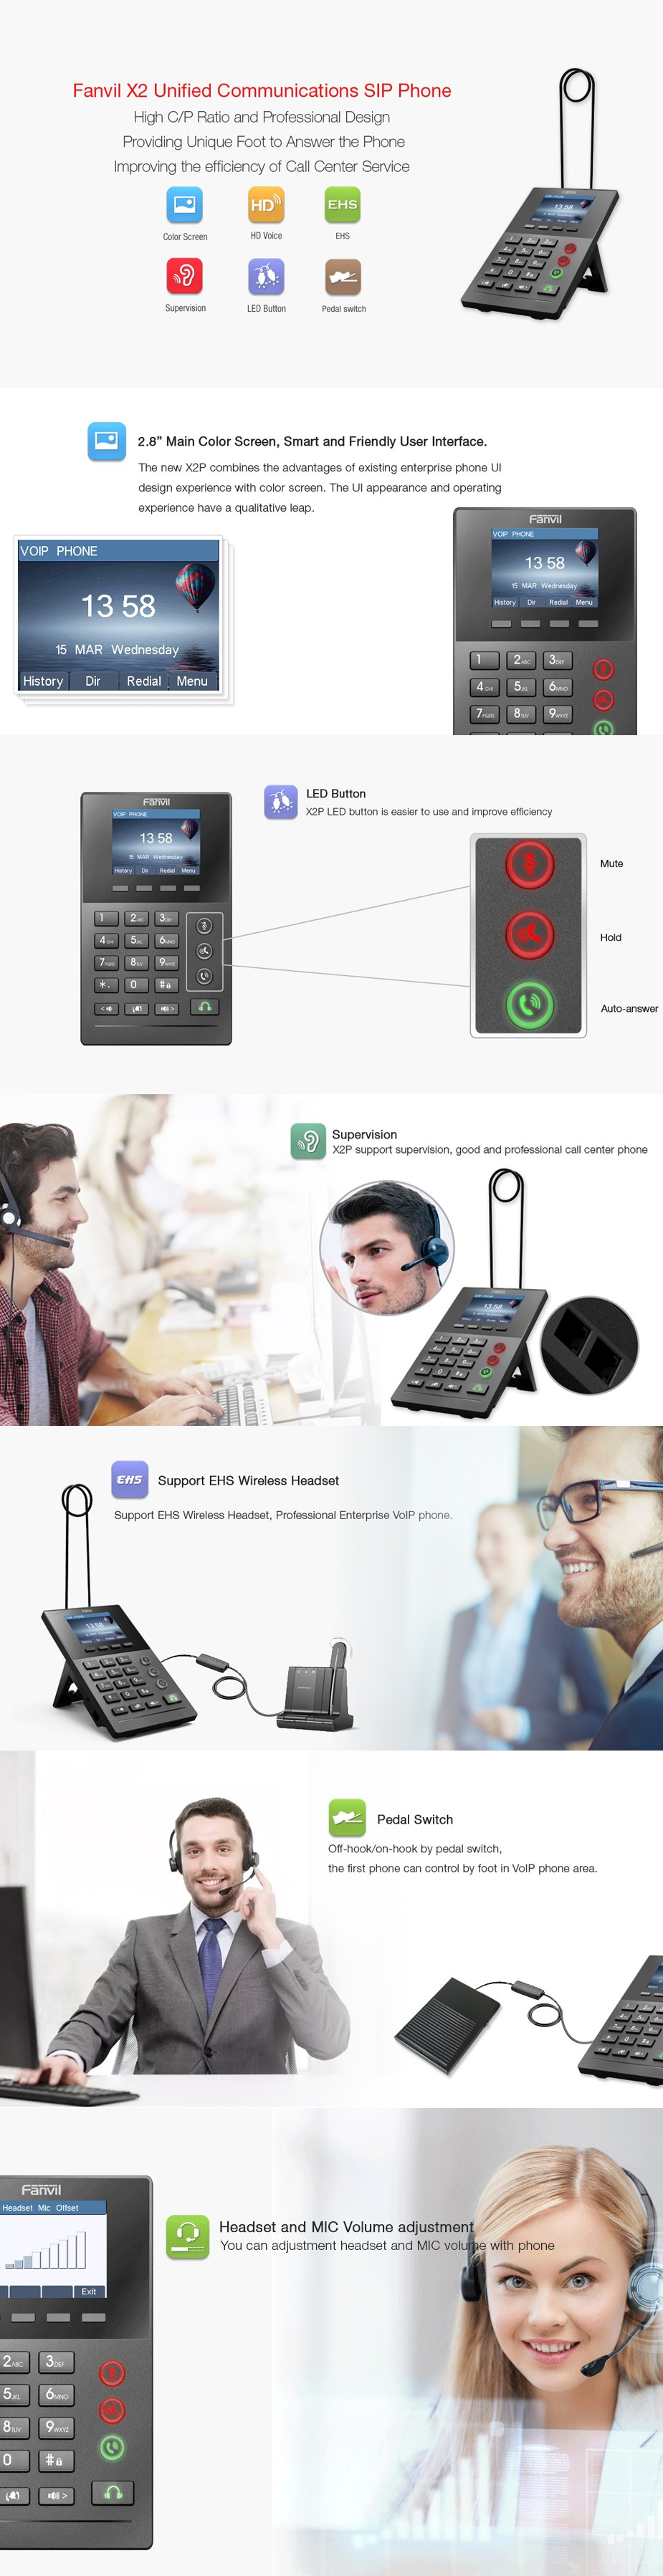 Fanvil X2P Call Center IP Phone - Desktop Overview 1